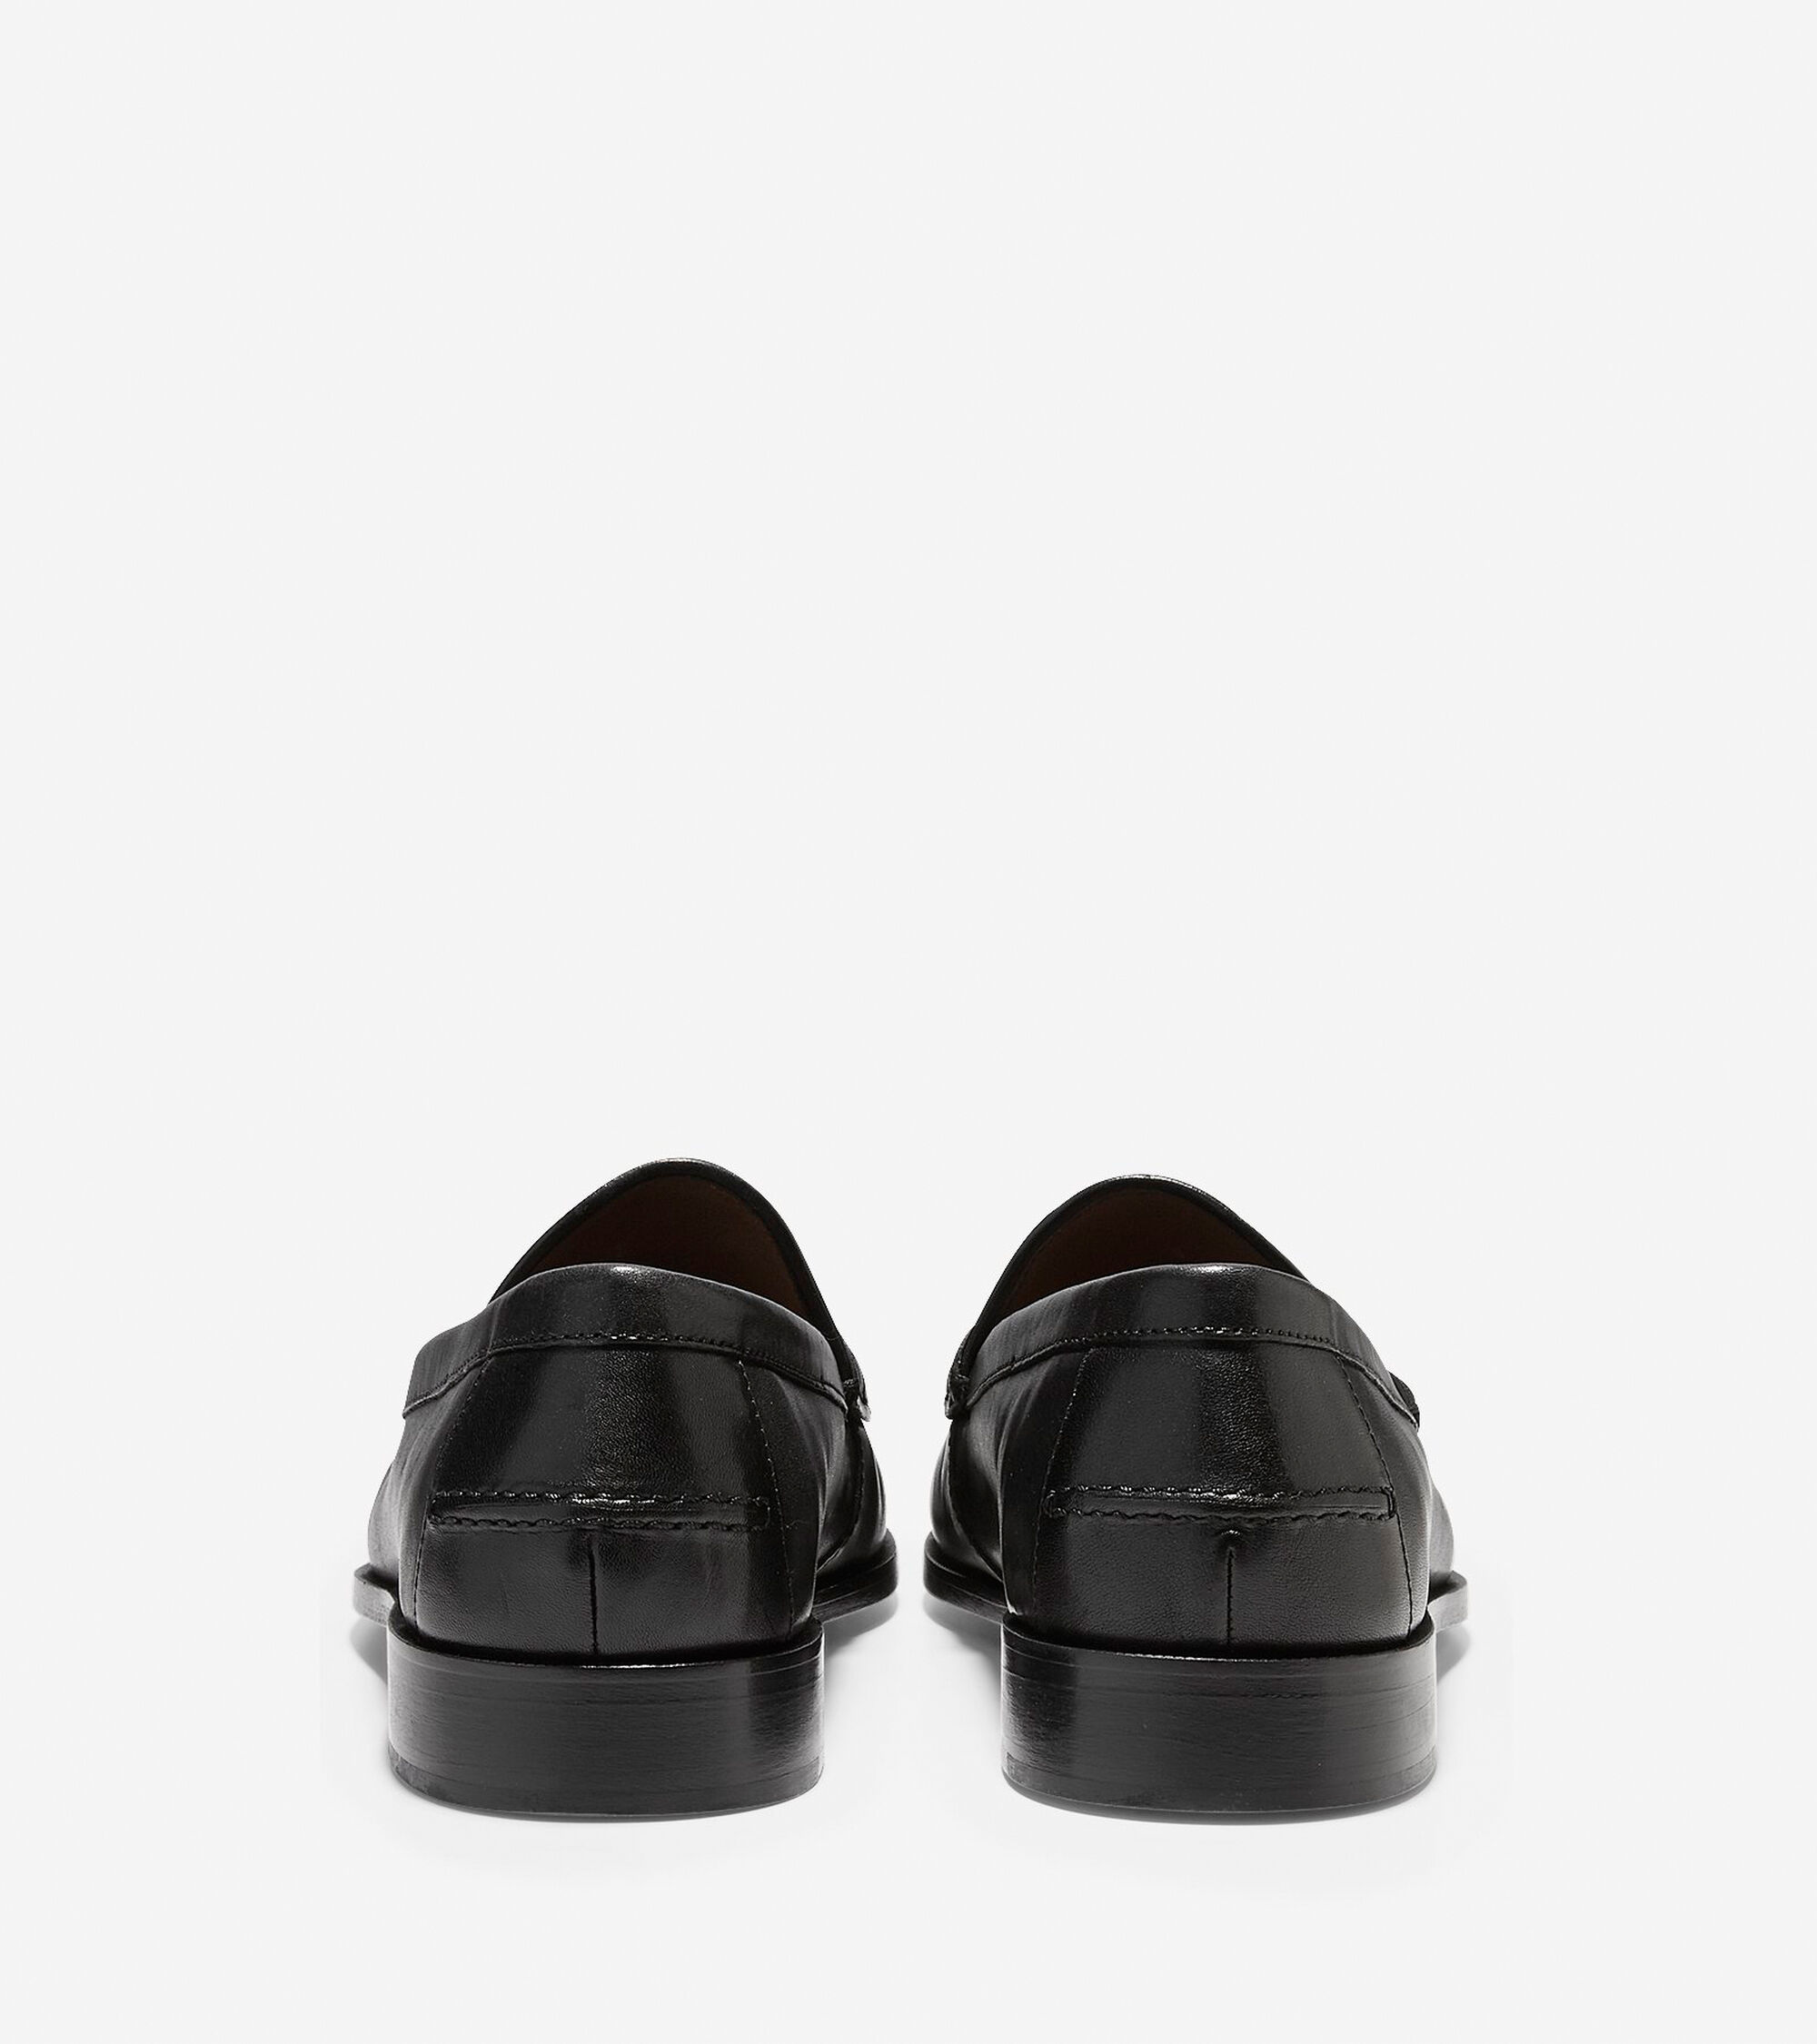 076f9c431ca Mens Pinch Gotham Bit Loafers in Black